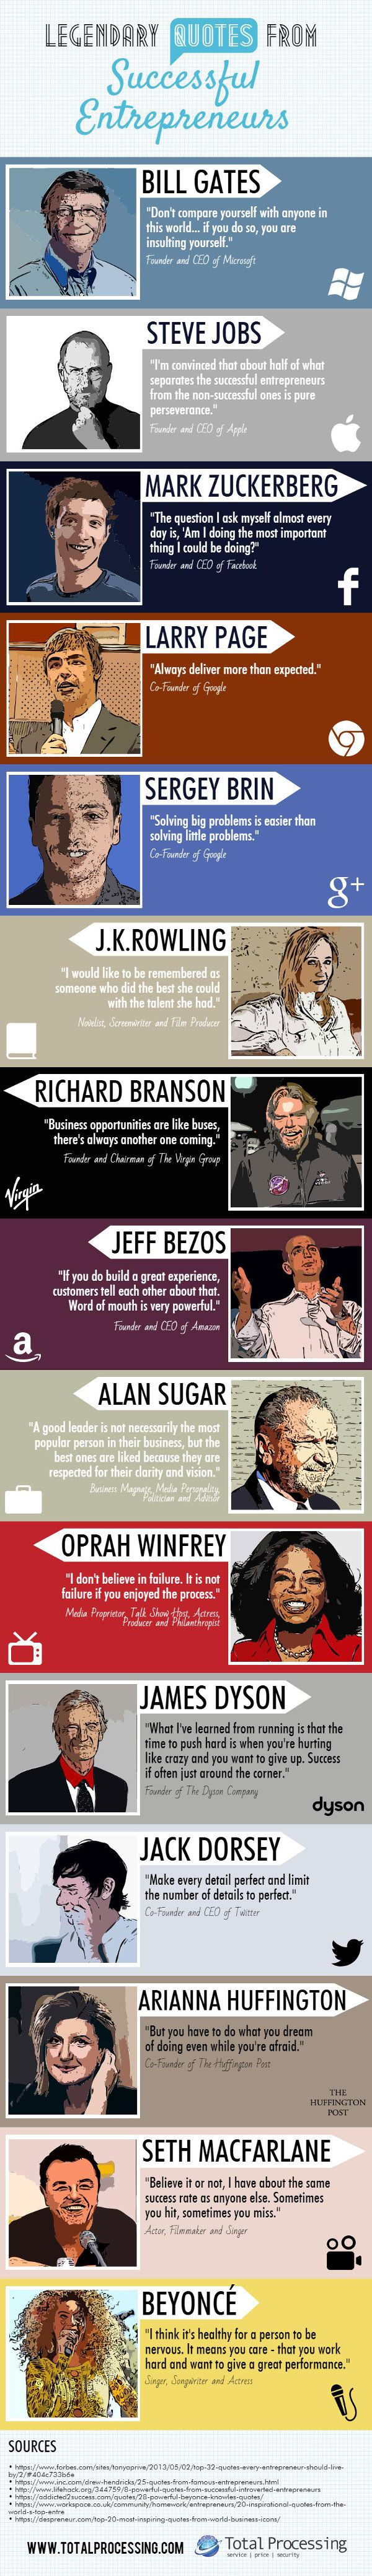 #Leadership #Infographics - Legendary Quotes From Successful Entrepreneurs